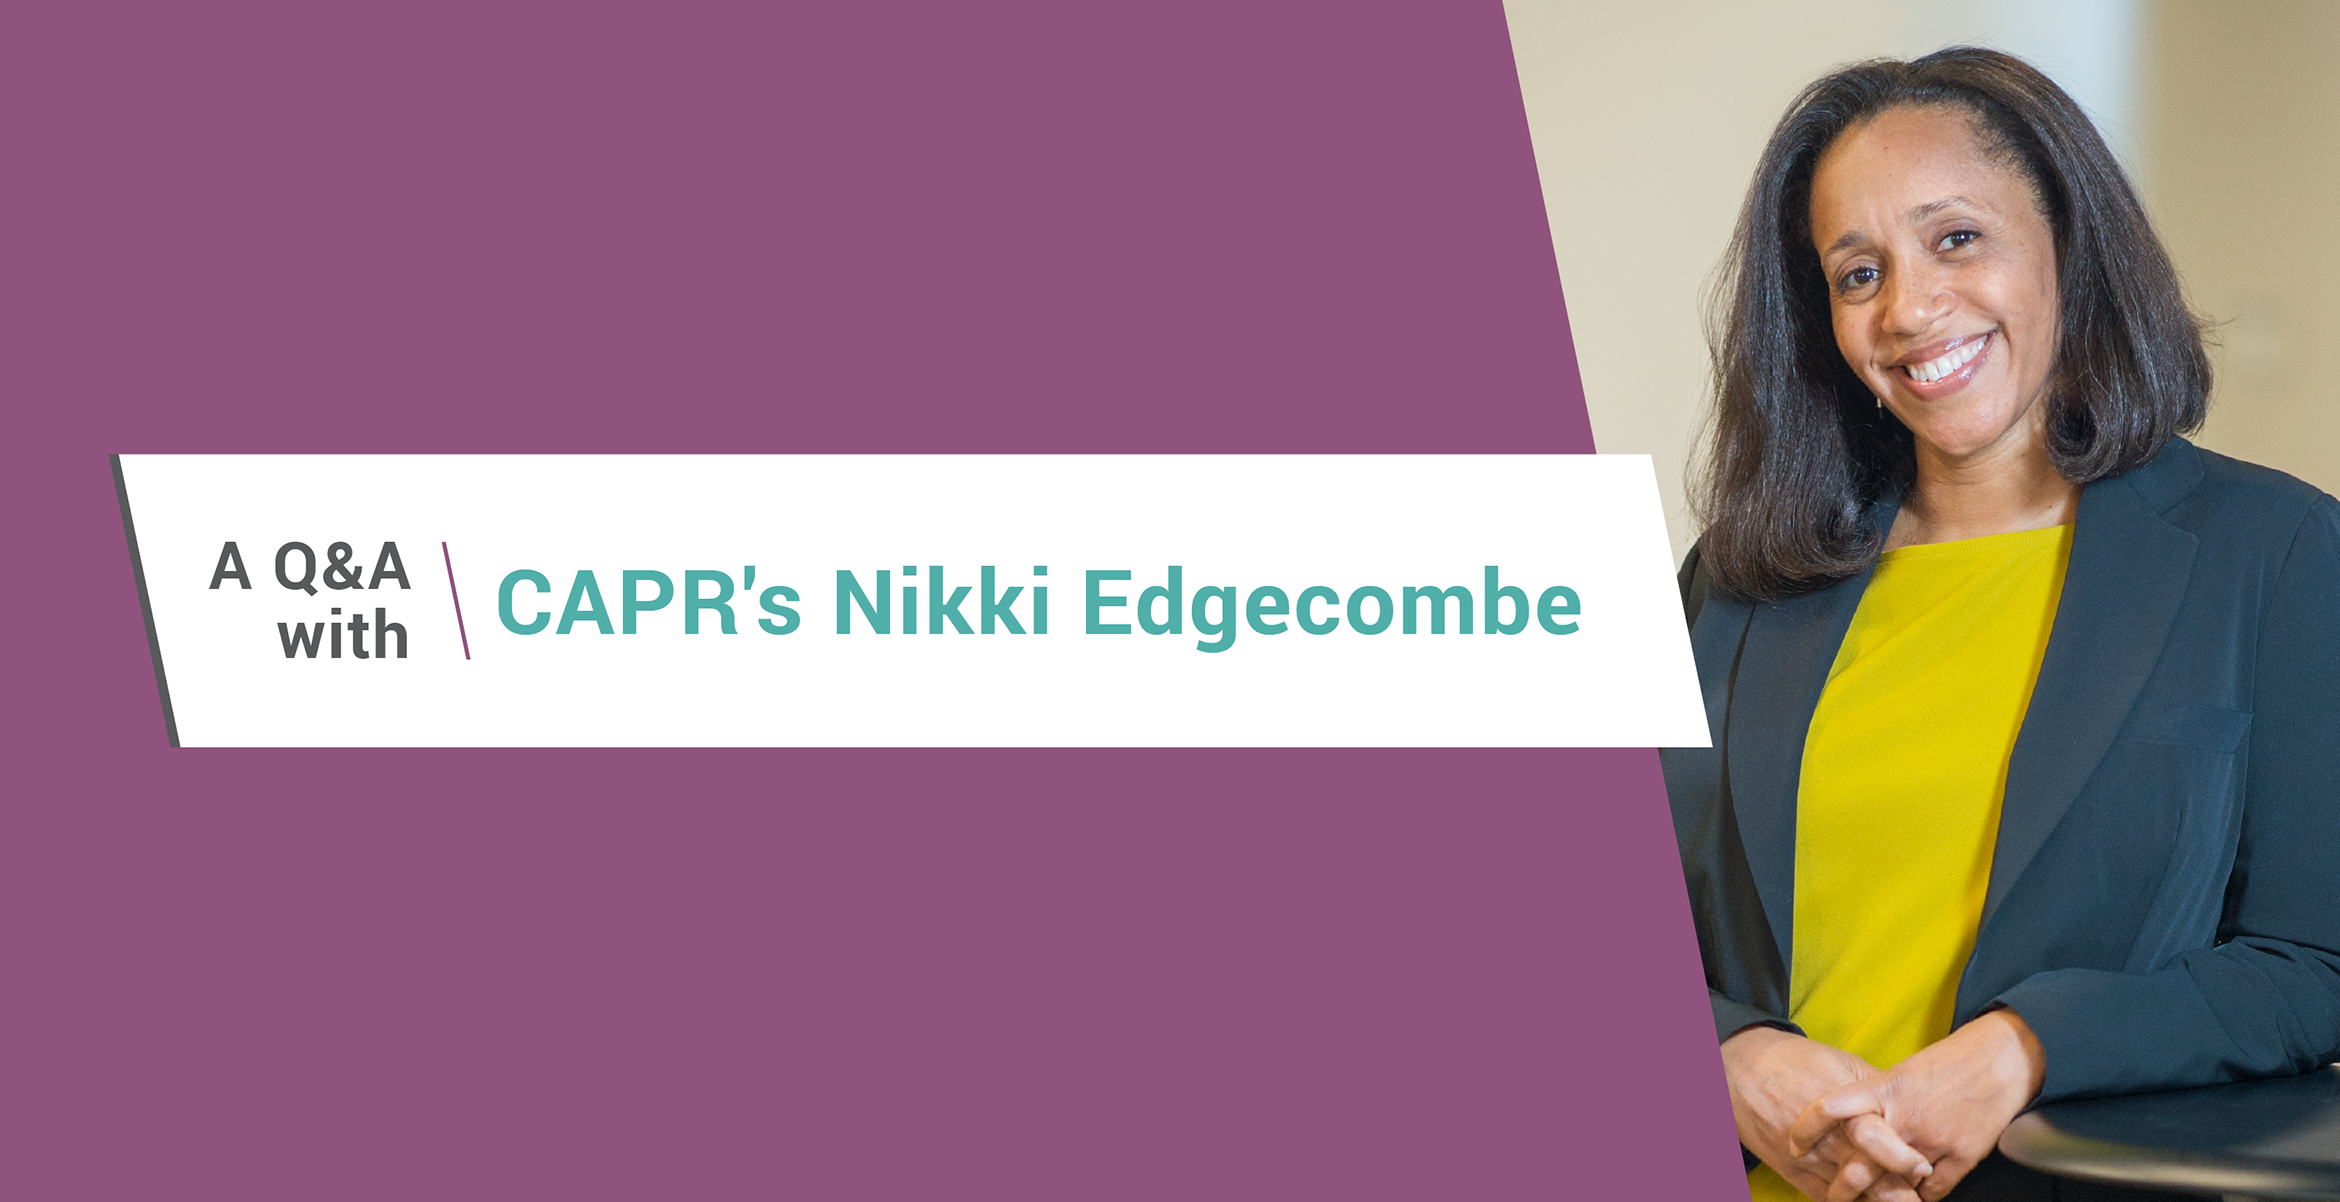 Nikki Edgecombe smiles against a purple background. The title of the post is A Q&A with CAPR's Nikki Edgecombe.